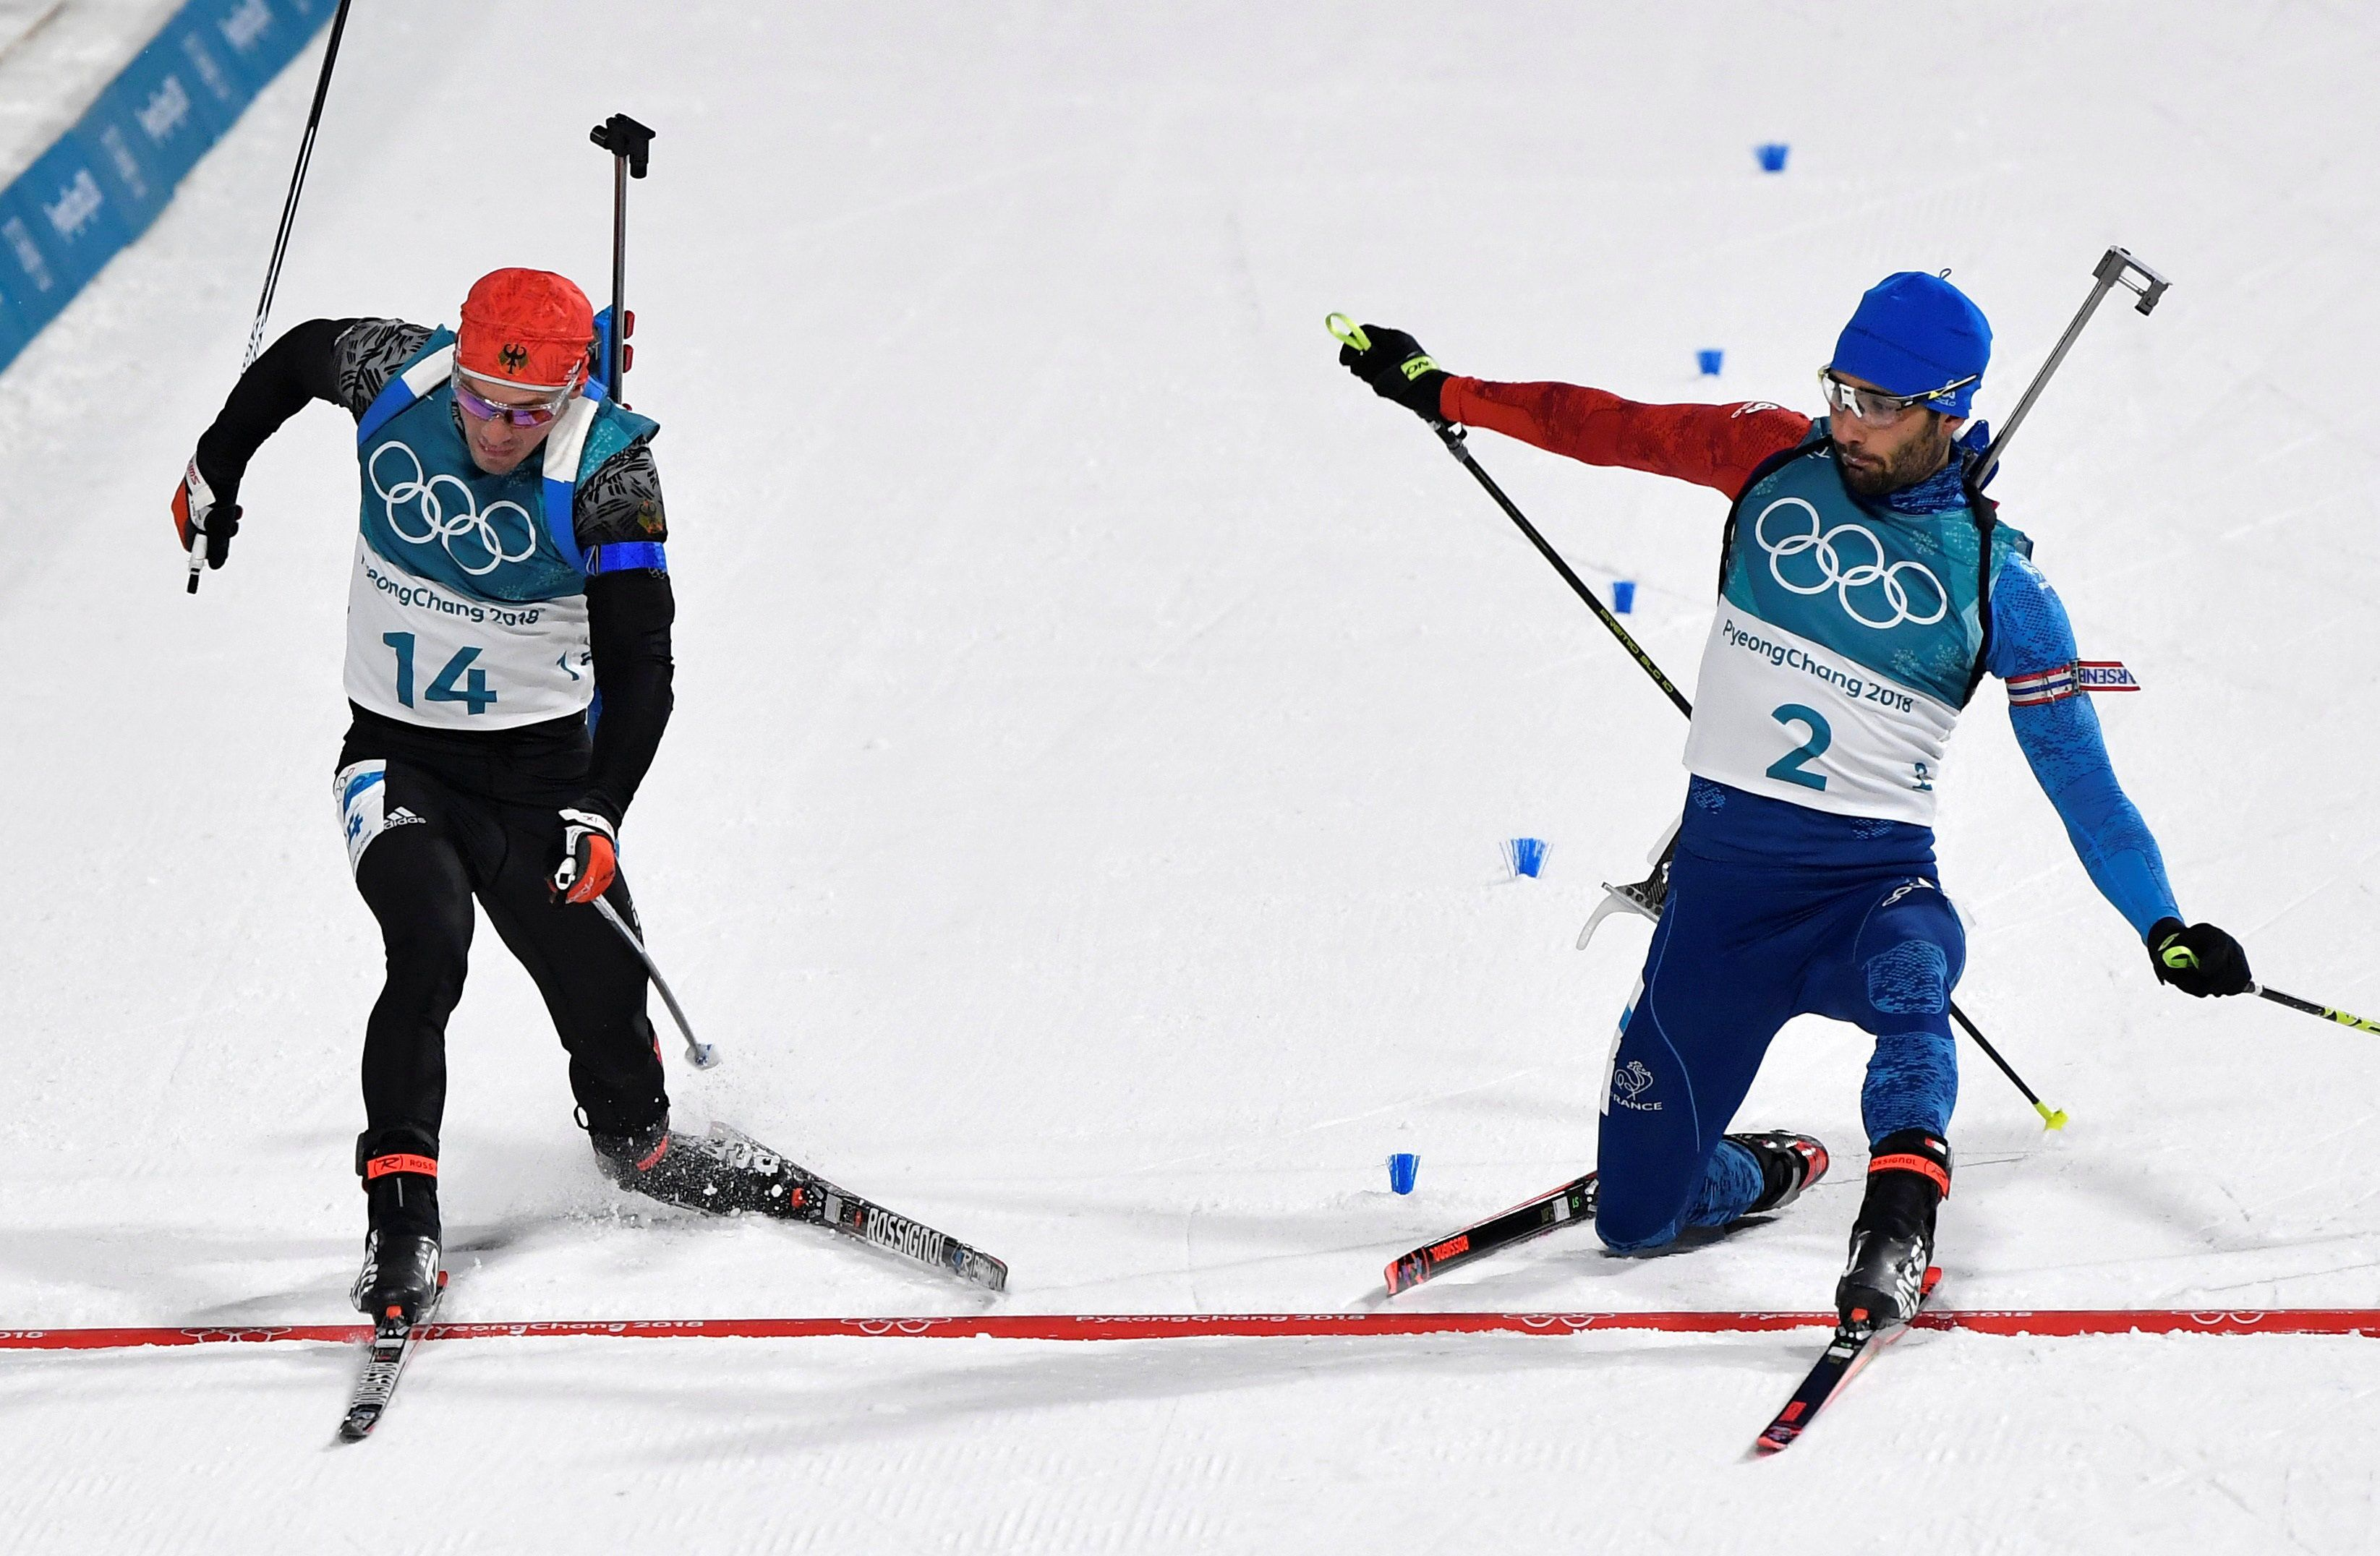 """Biathlon - Pyeongchang 2018 Winter Olympics - Men's 15 km Mass Start Final - Alpensia Biathlon Centre - Pyeongchang, South Korea - February 18, 2018 - Martin Fourcade of France and Simon Schempp of Germany finish. REUTERS/Toby Melville   SEARCH """"OLYMPICS BEST"""" FOR ALL PICTURES. TPX IMAGES OF THE DAY."""